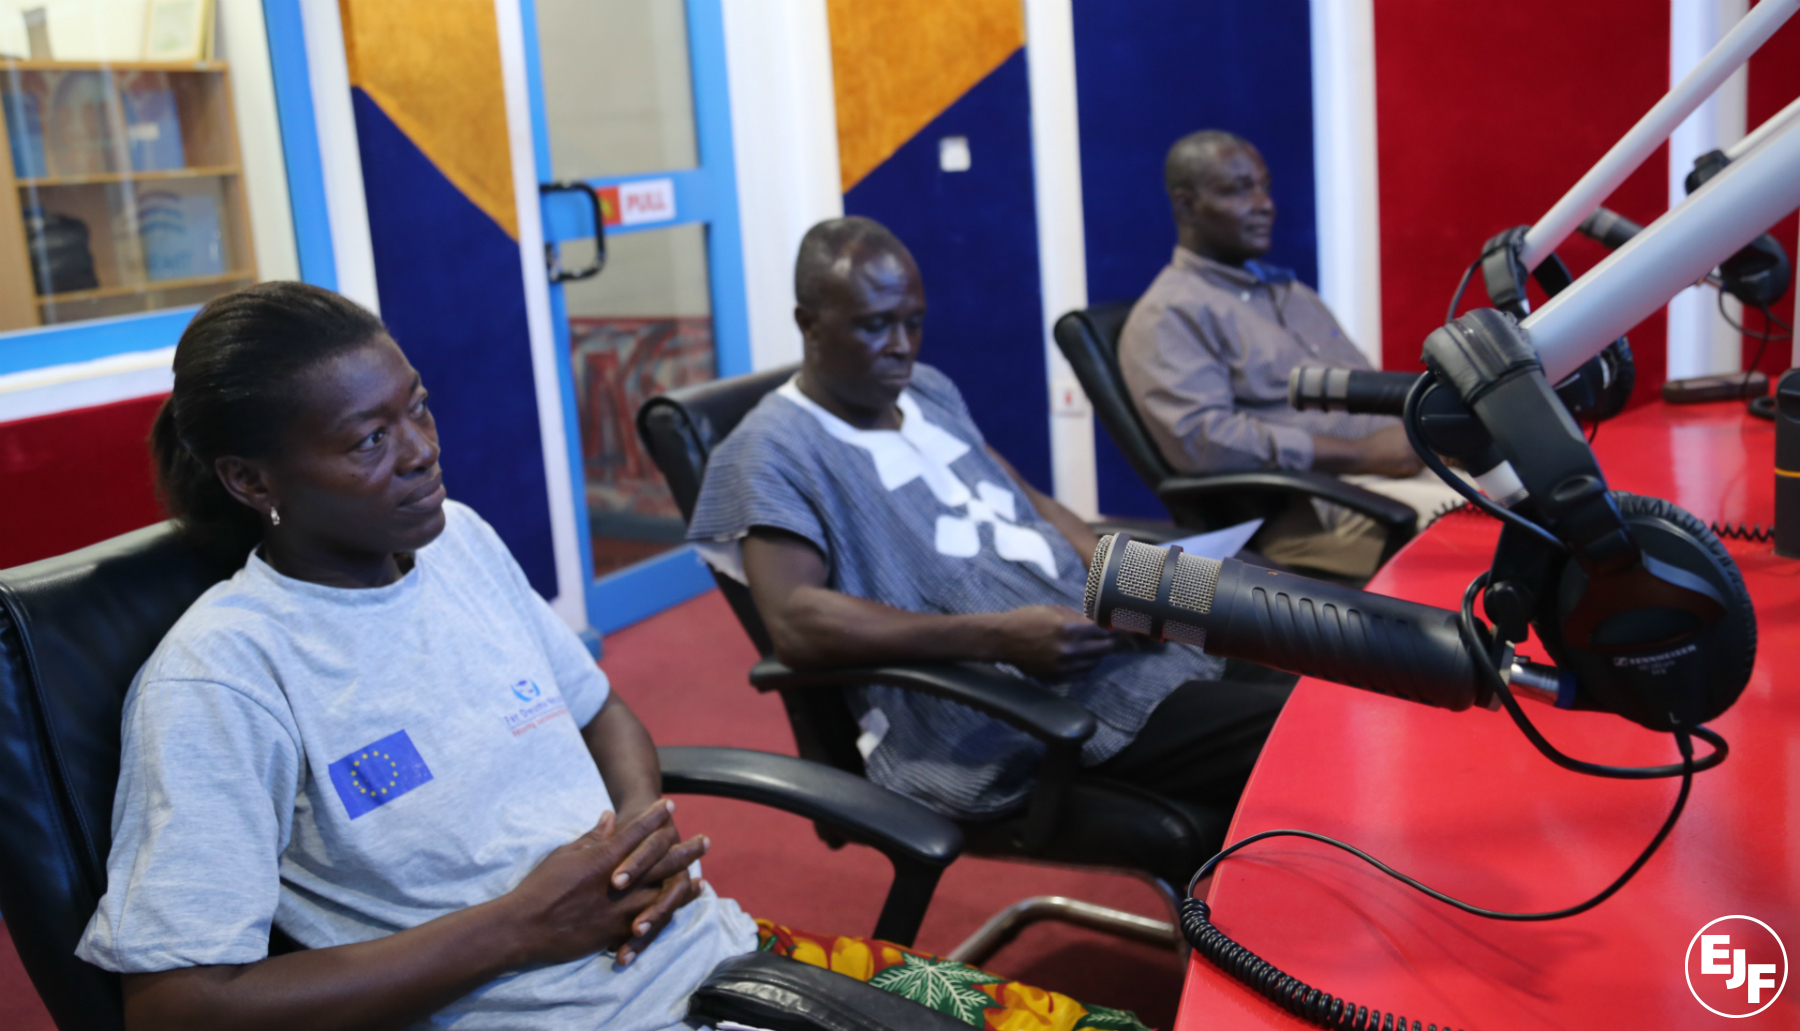 EJF and partners Hen Mpoano launch regular radio show in Cape Coast, Ghana